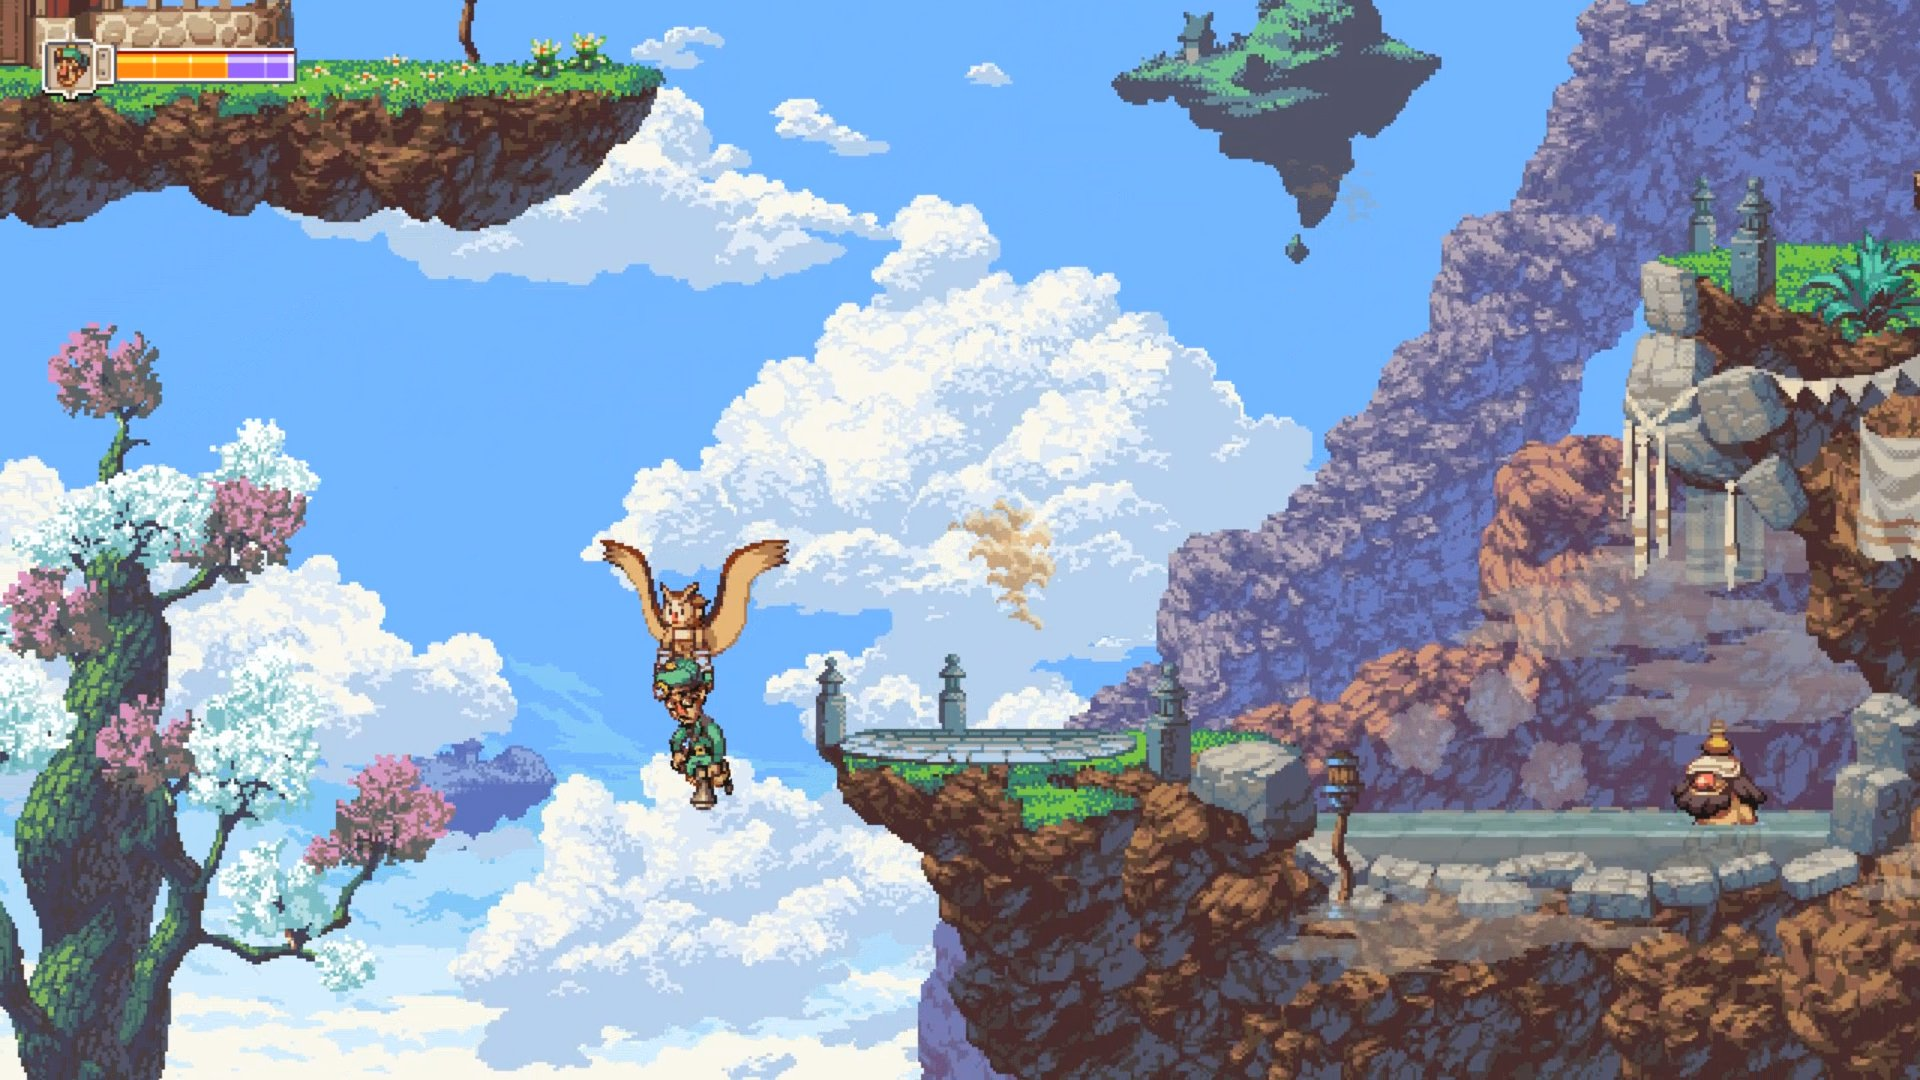 Here's an actual quality game with unlimited free flying: Owlboy.